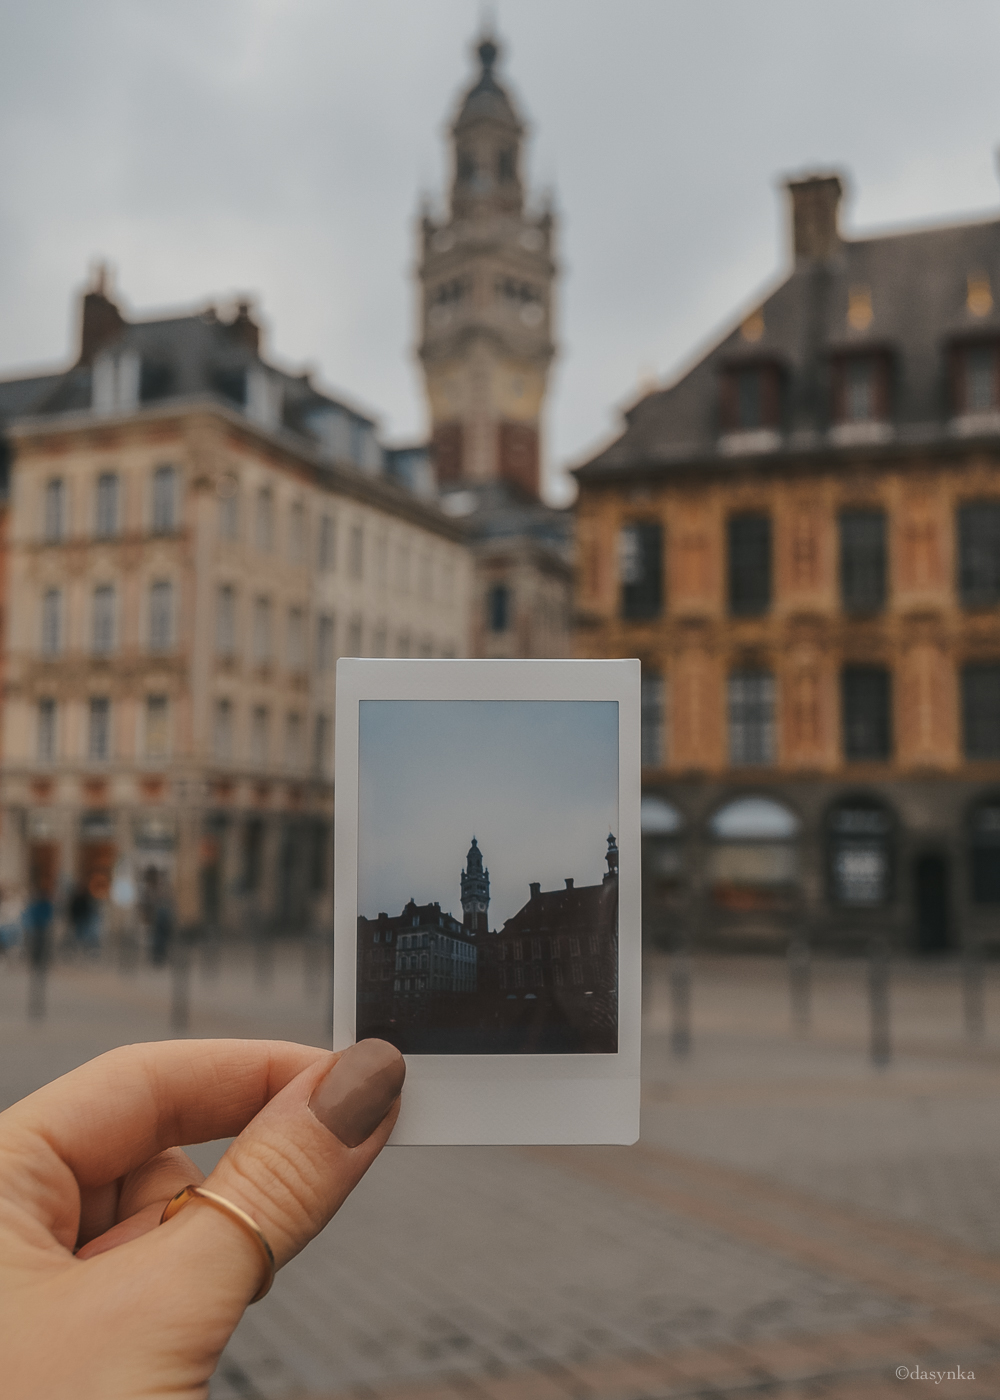 dasynka-fashion-blog-blogger-influencer-inspiration-shooting-globettrotter-travel-traveller-instagram-lifestyle-italy-ideas-italian-polaroids-polaroid-fujifilm-instax-90-8-worldmap-planisfero-mappa-mondo-pin-memories-photographs-vintage-print-lille-france